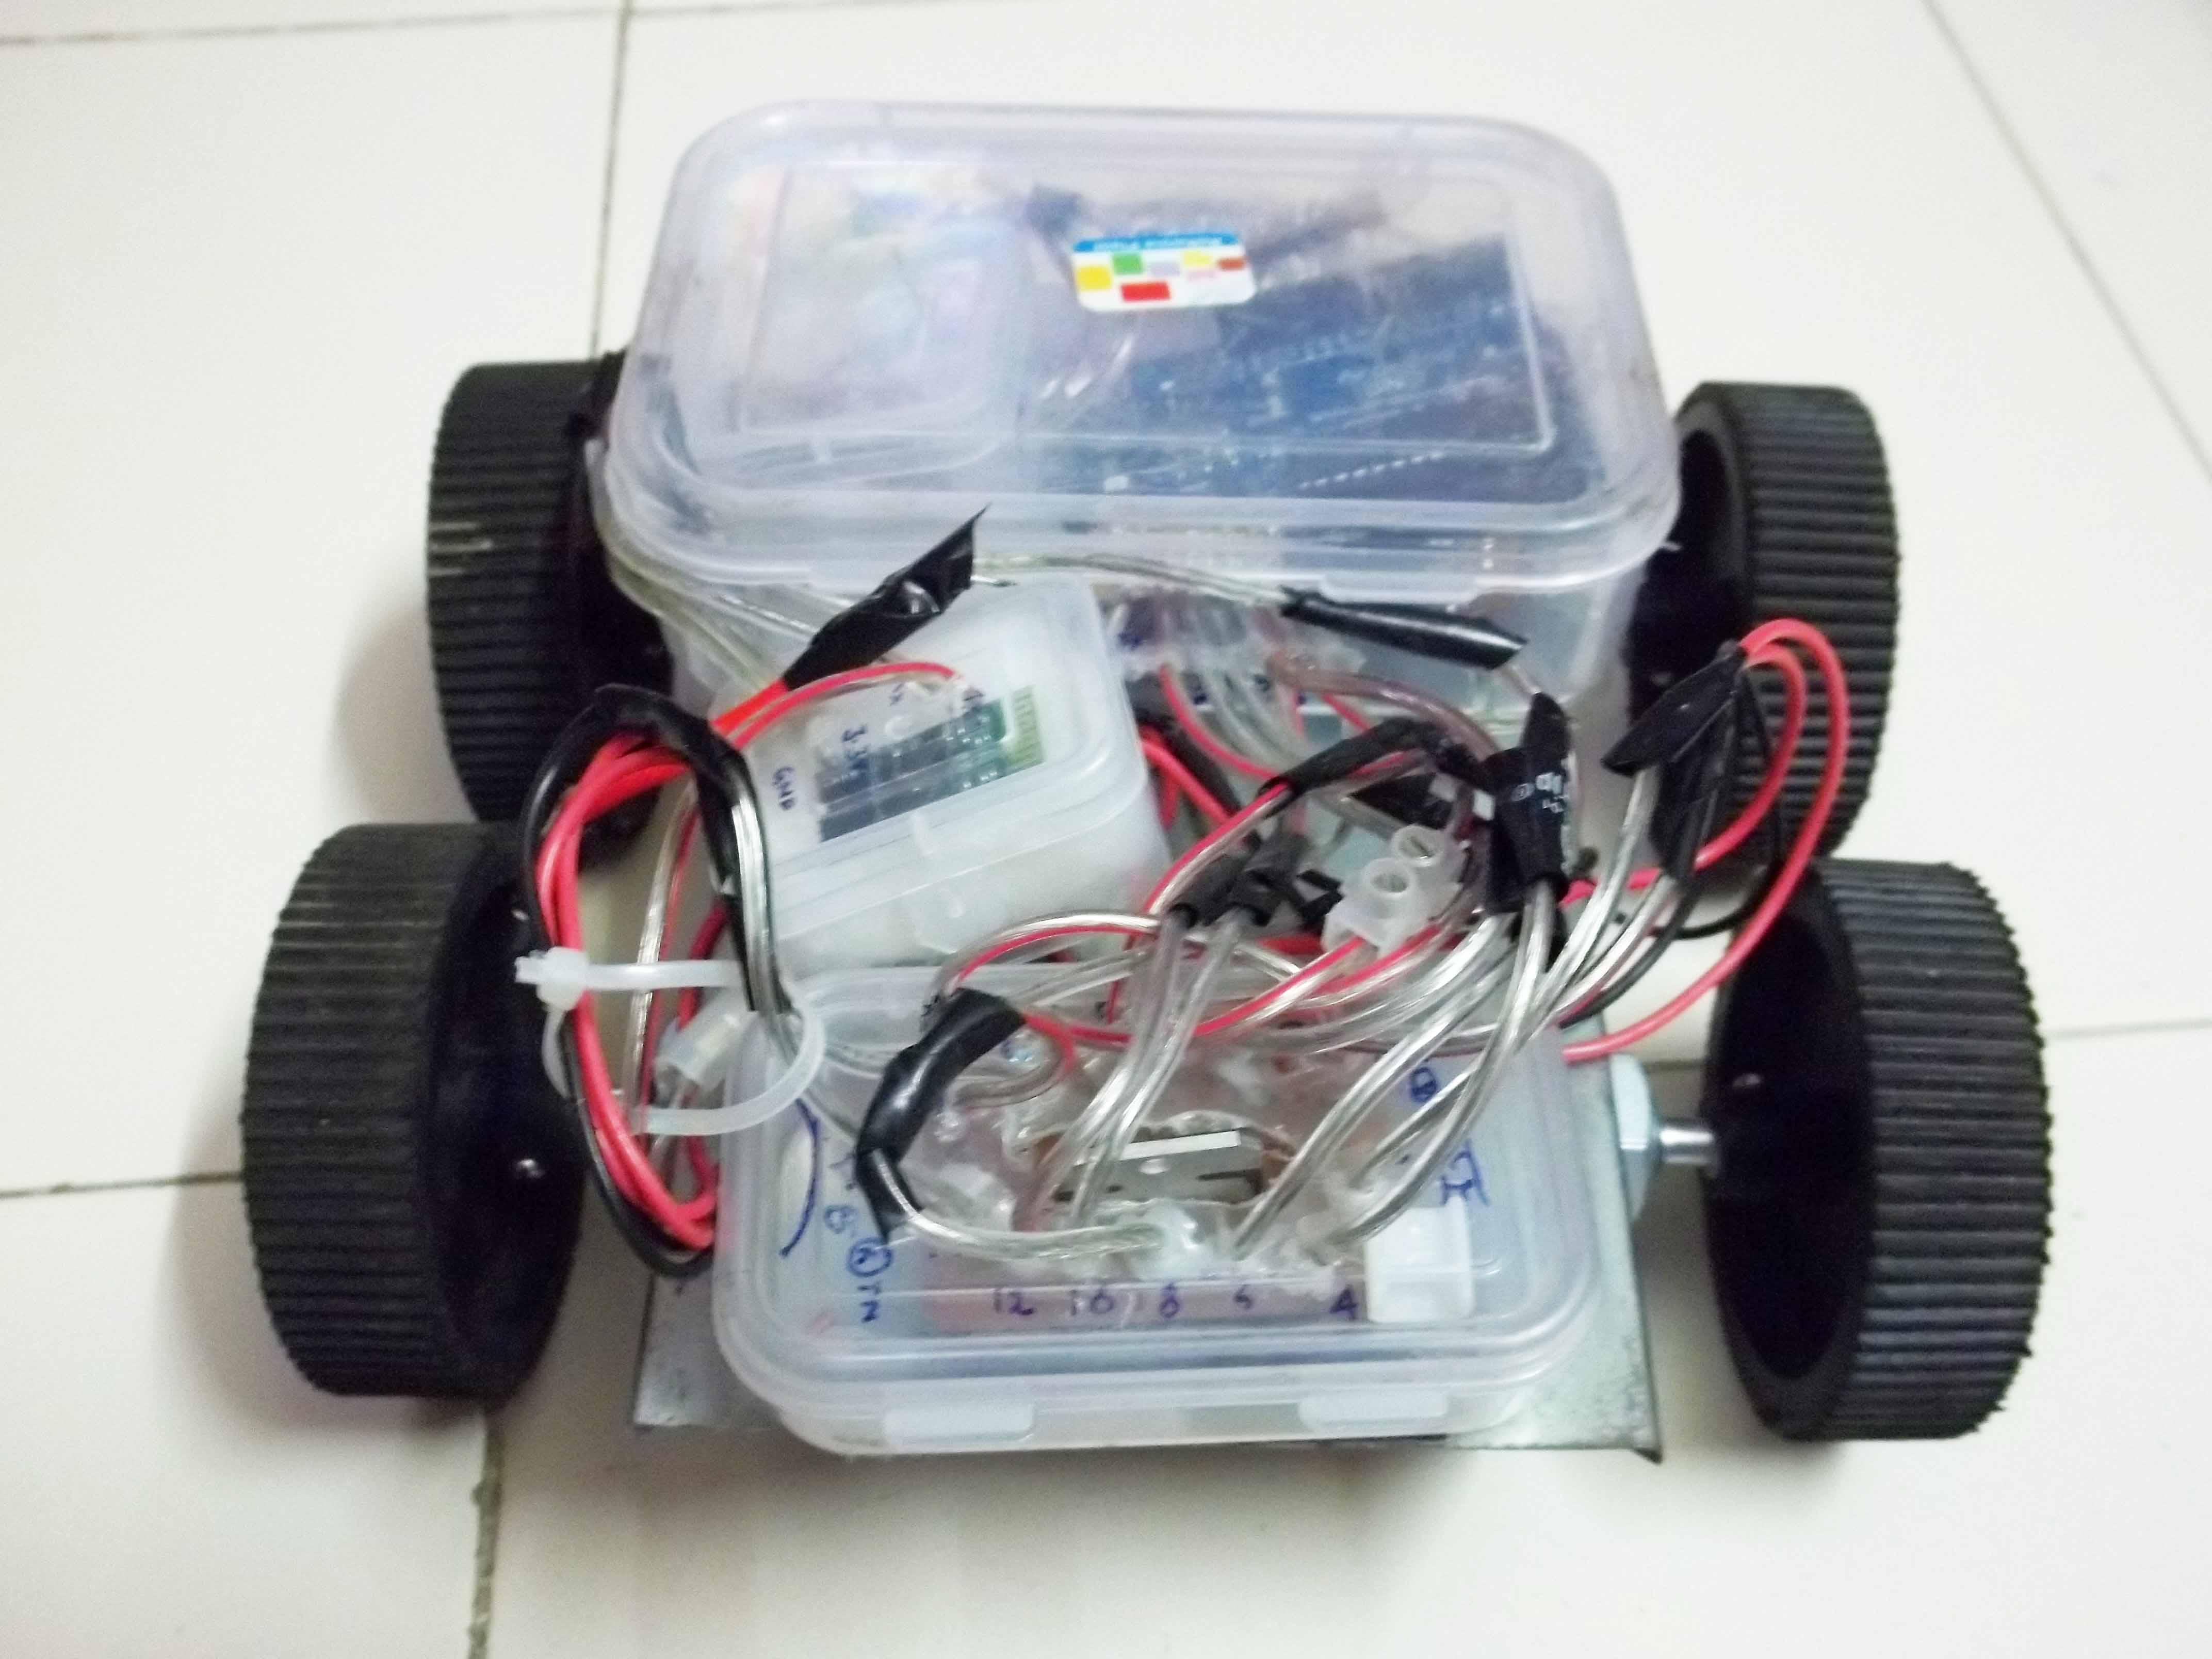 Hercules: The Motion Controlled Android Robot